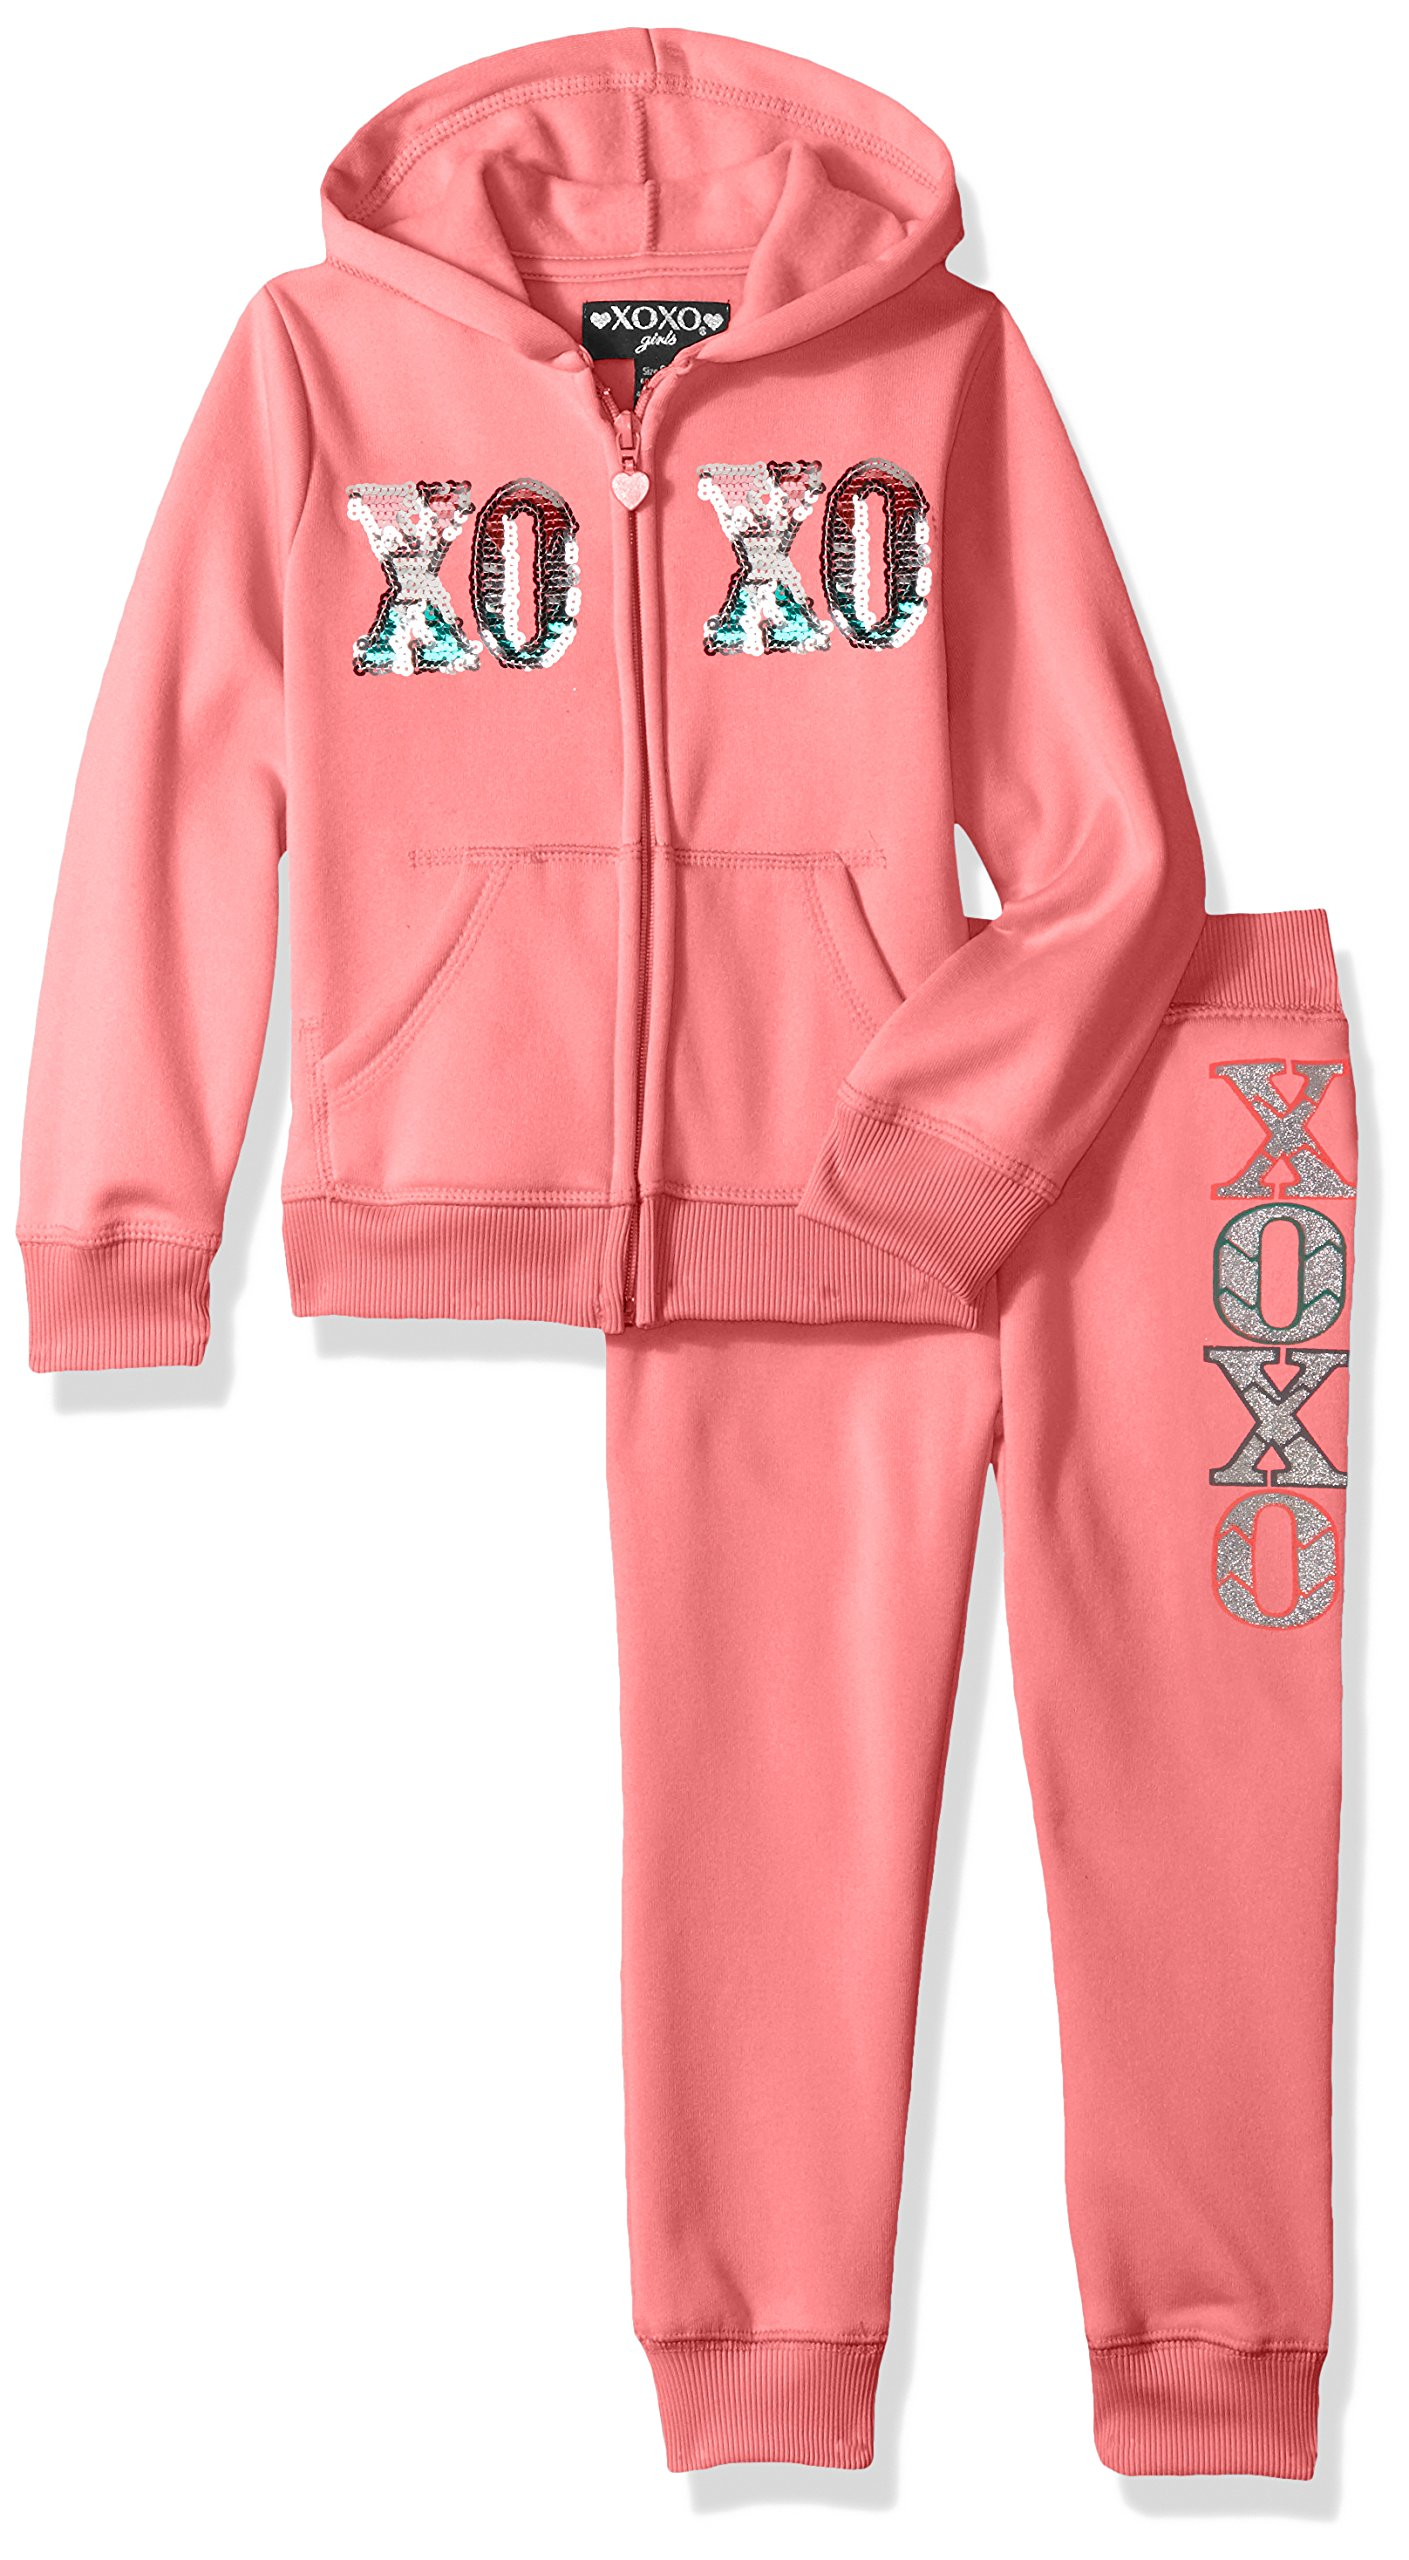 XOXO Big Girls' Hoodie and Jogger Set, Pink Volt, 10/12